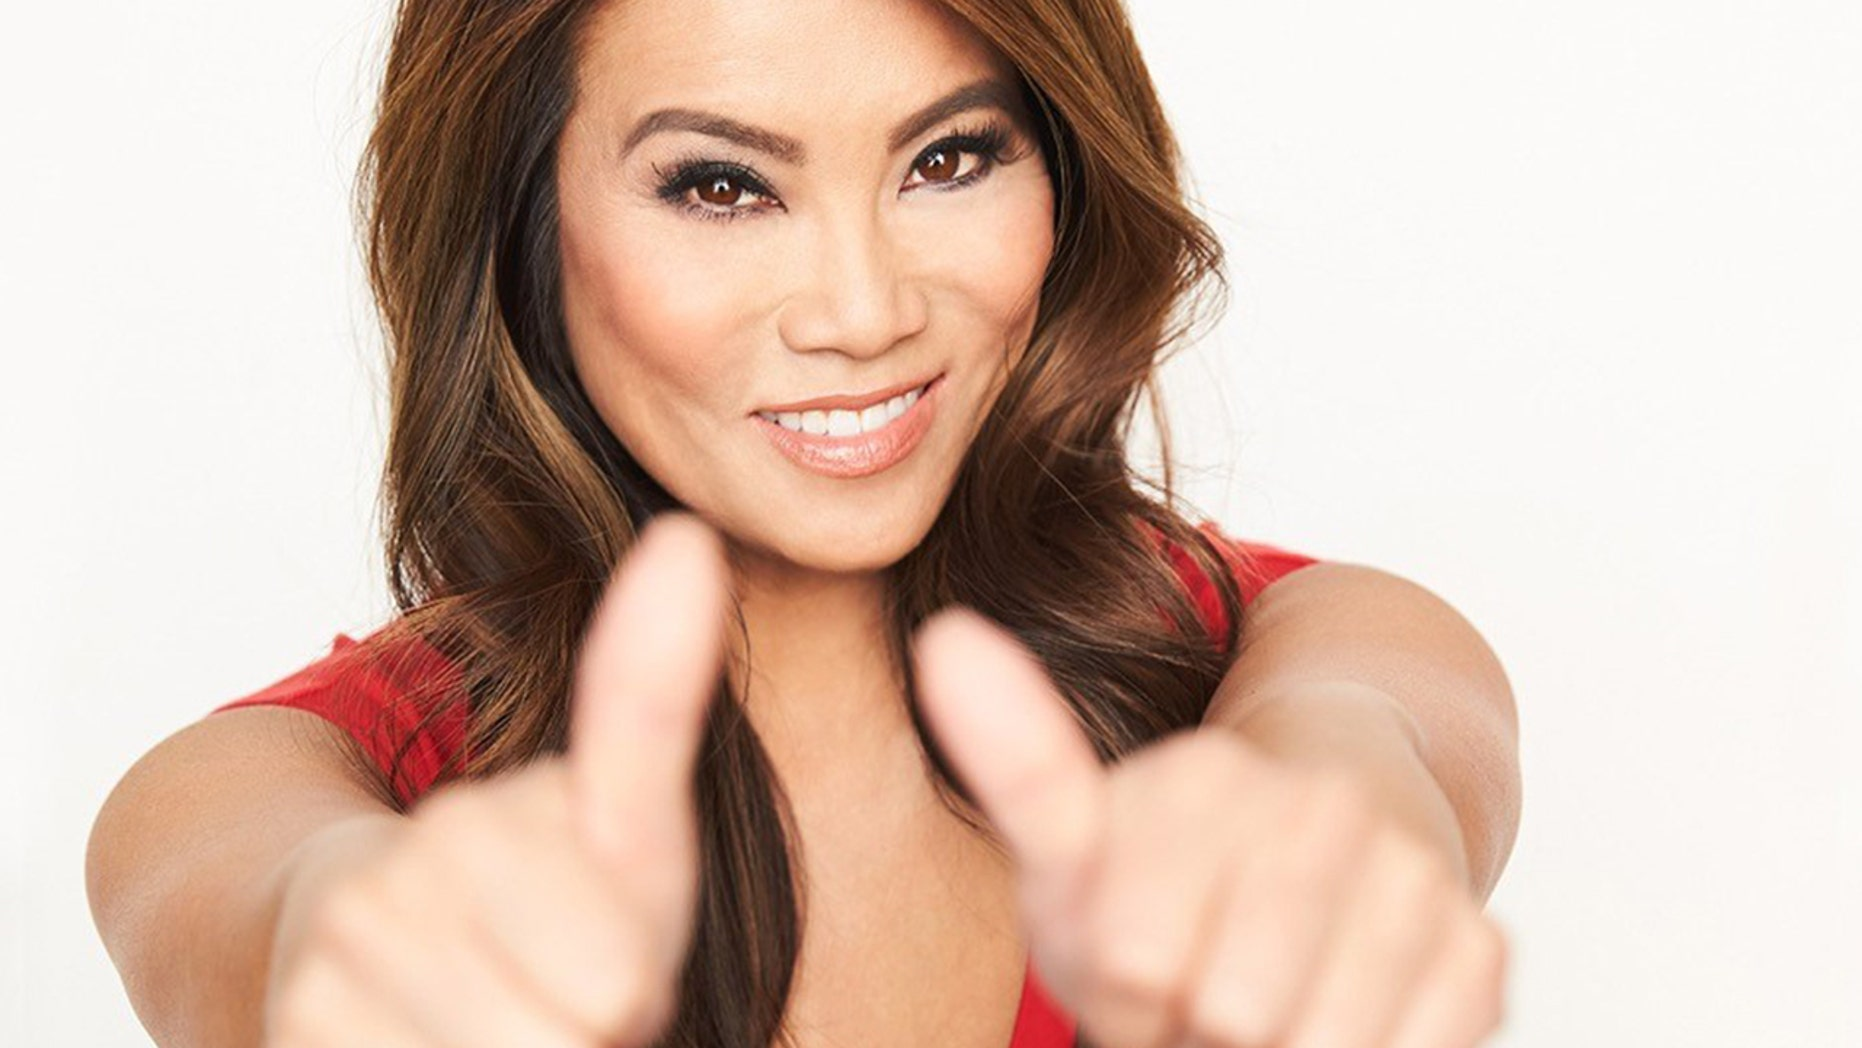 dr. pimple popper shares what actually grosses her out, plus the